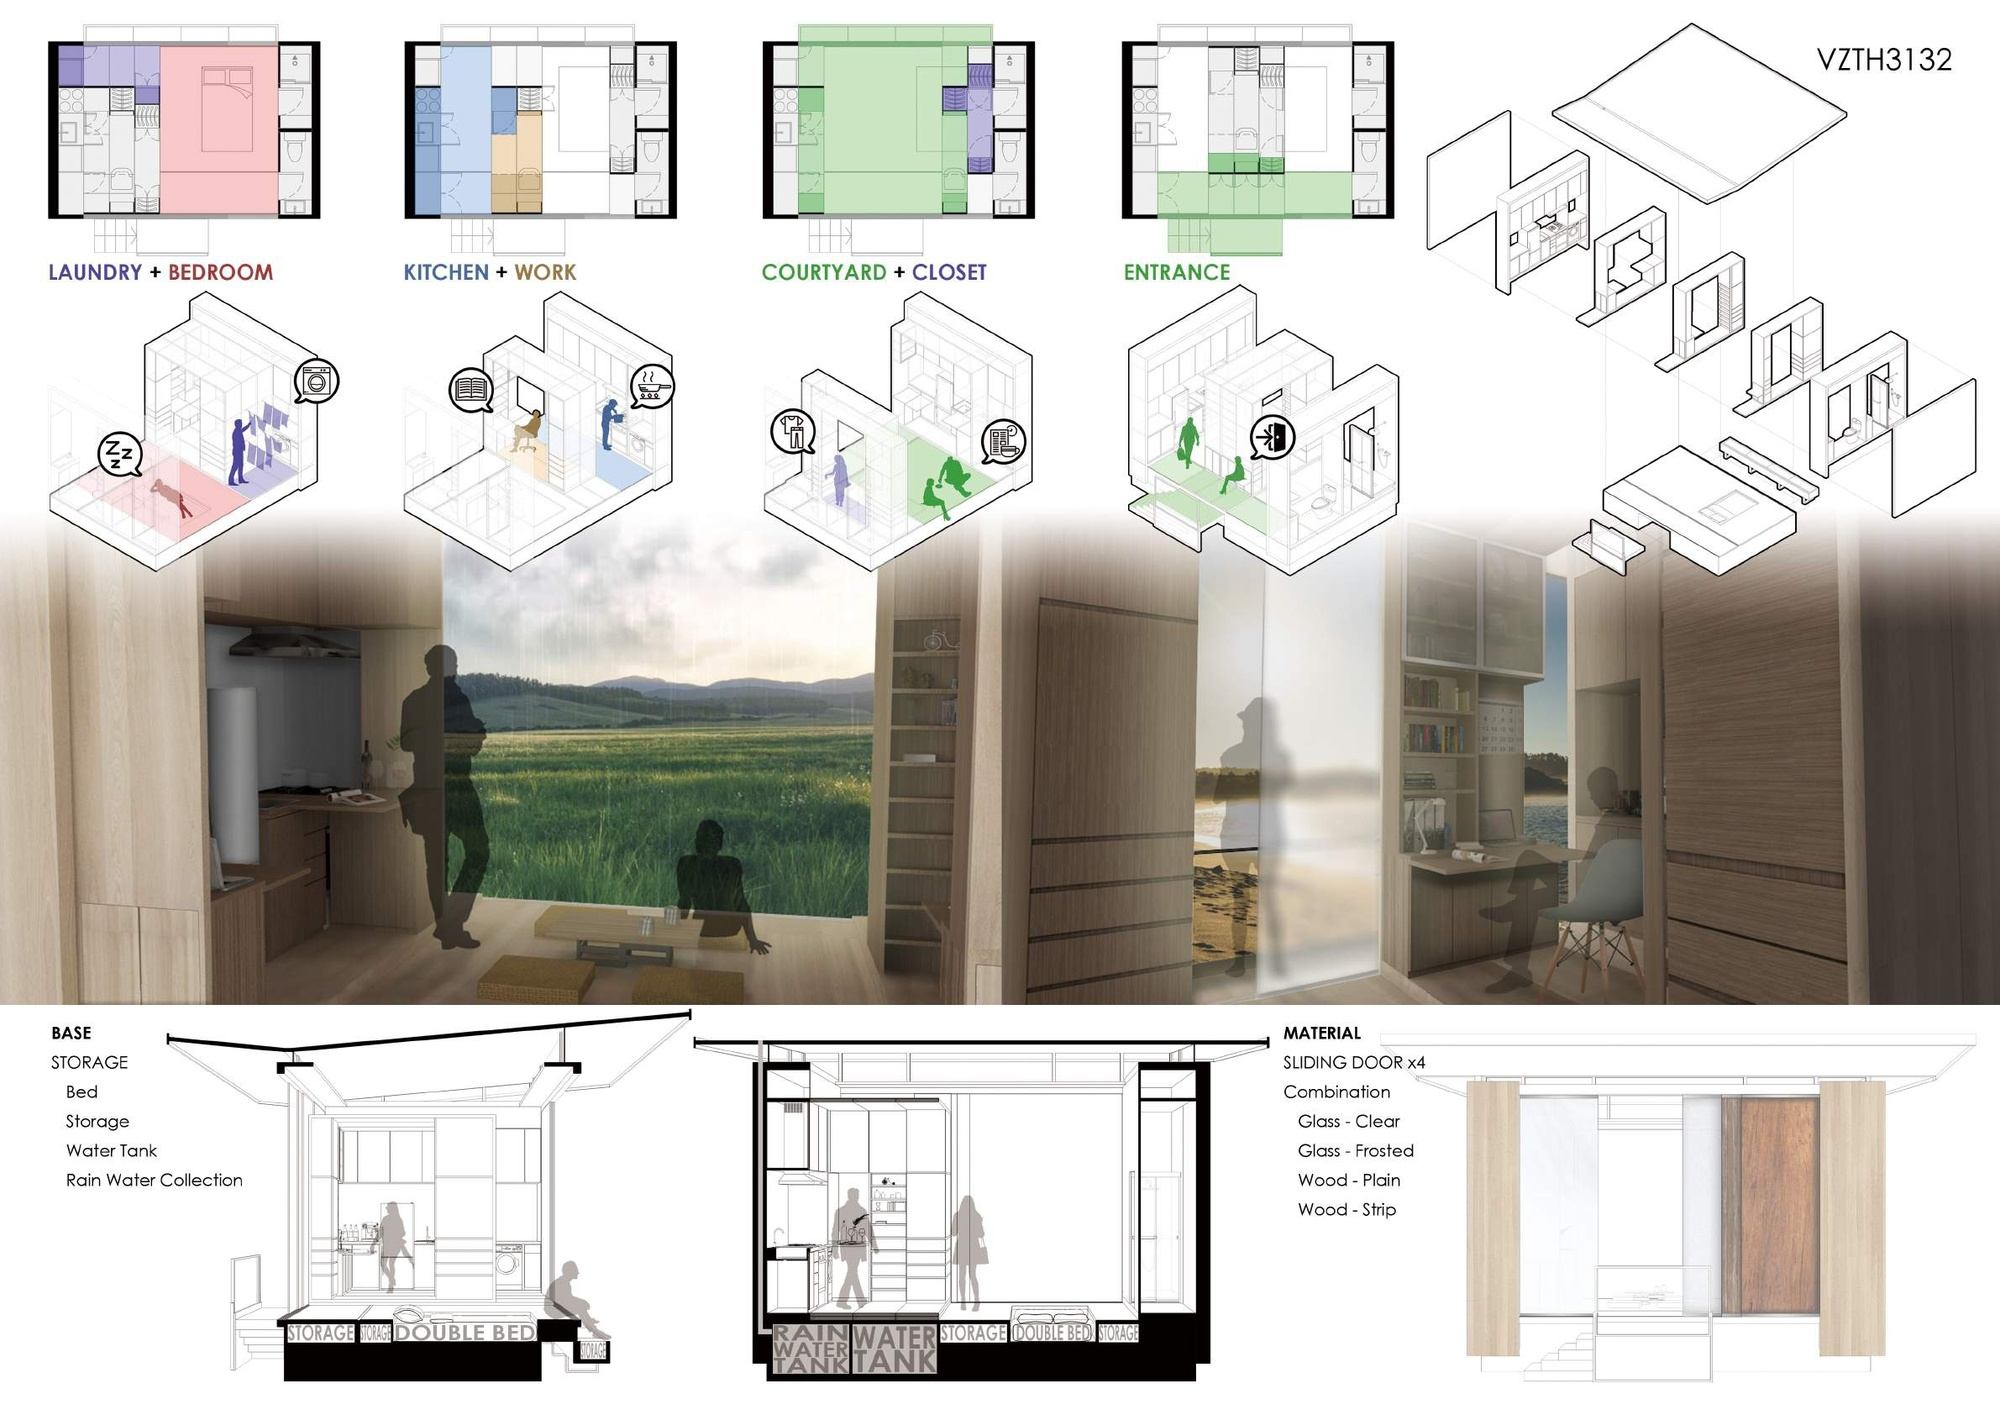 Gallery of tiny house design competition winners revealed 6 for Architecture house design competitions